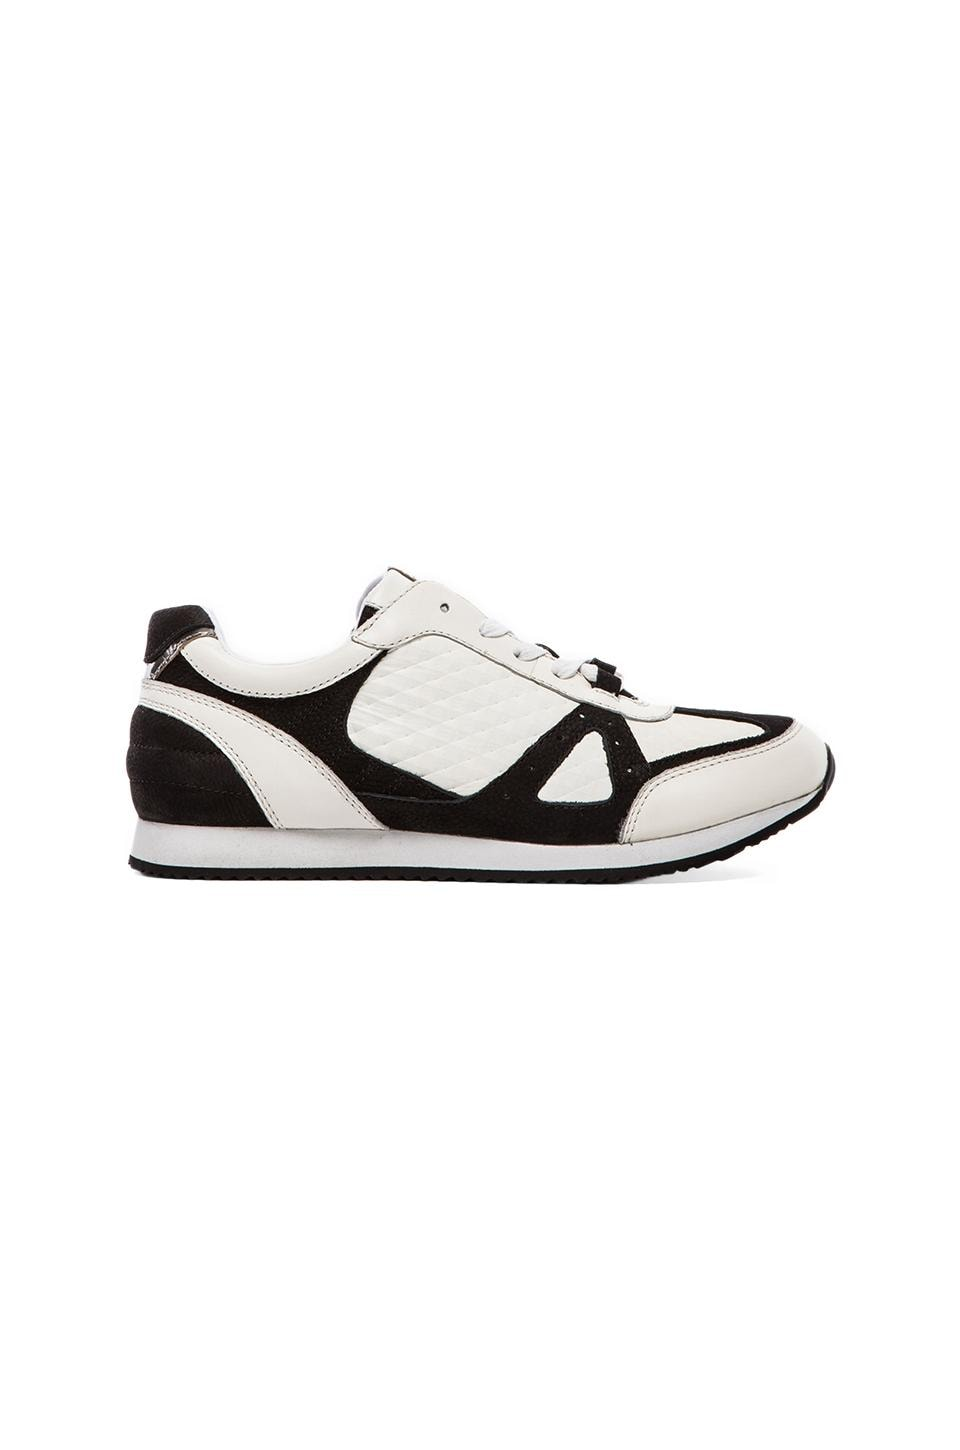 RACHEL ZOE Jeni Sneaker in White/Black